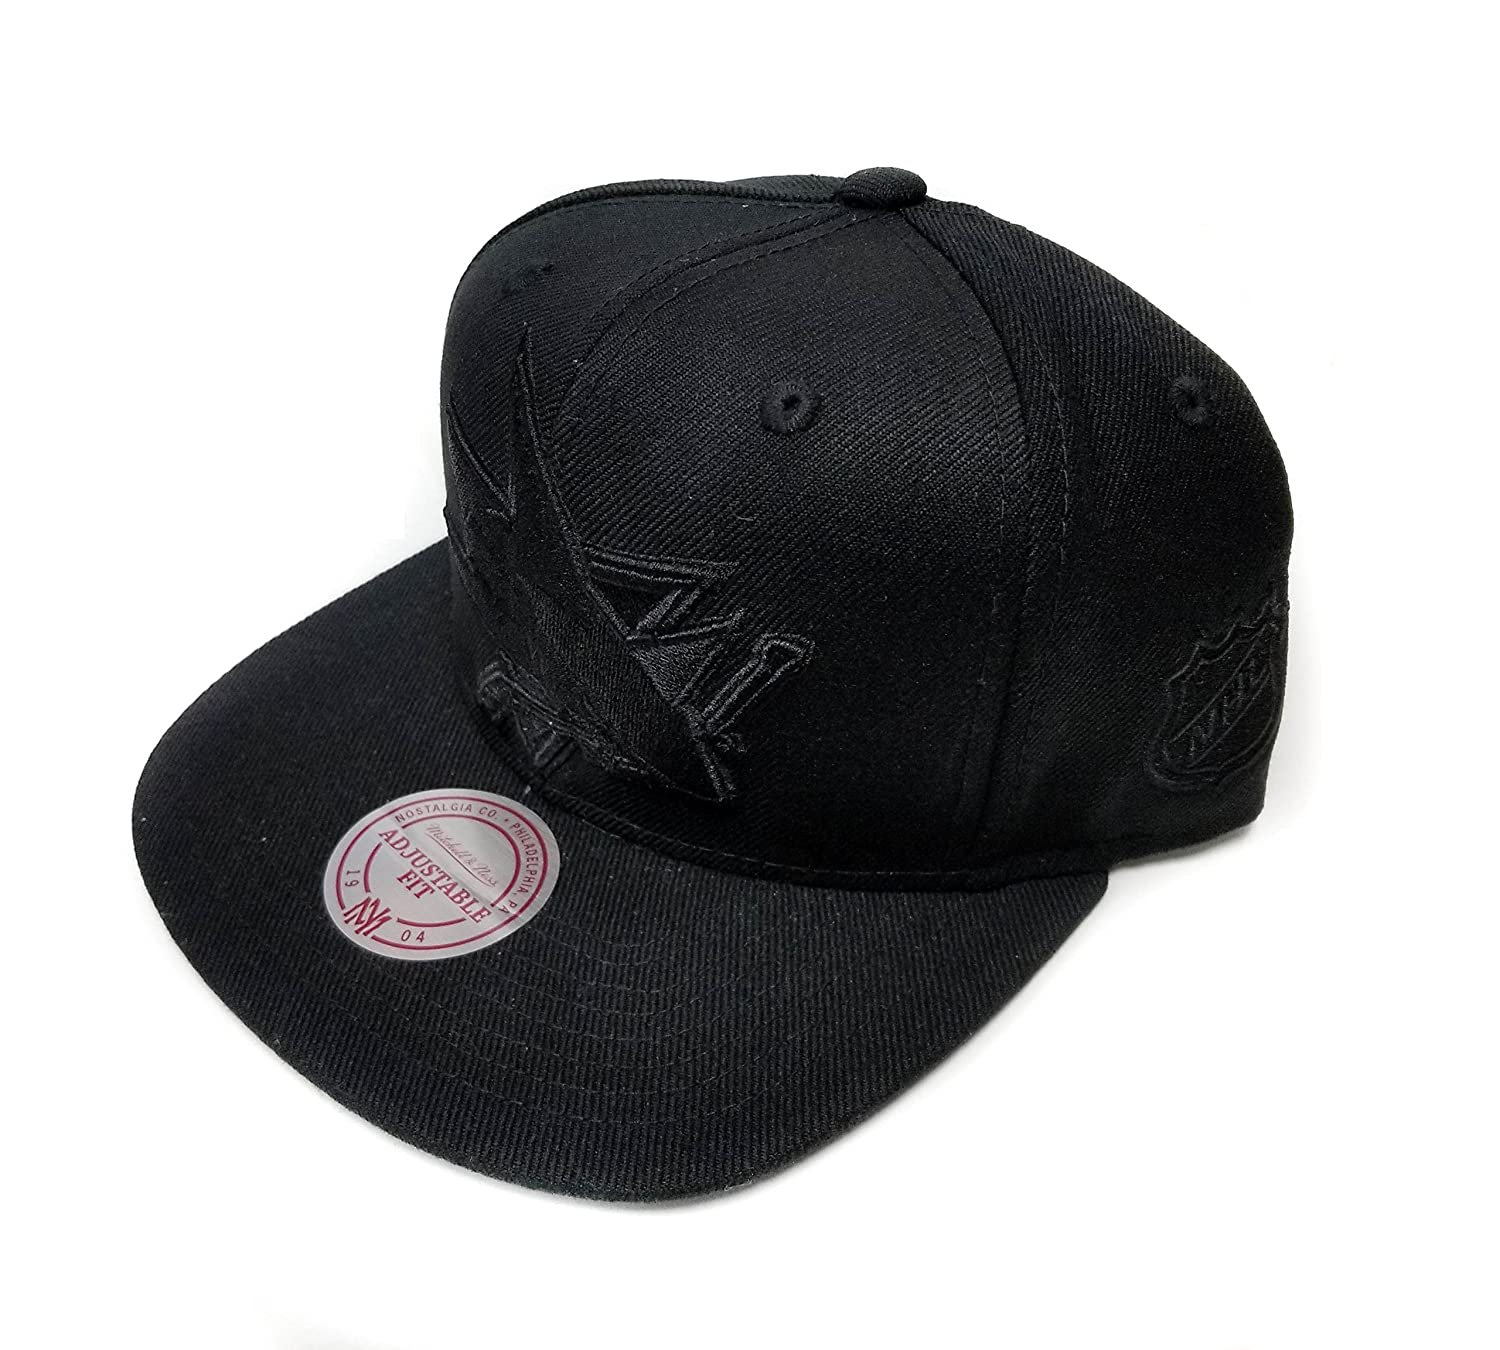 fbbe7cbf7 Mitchell & Ness San Jose Sharks Solid Wool Black & White Logo Vintage  Classic Adjustable Snapback Hat NHL